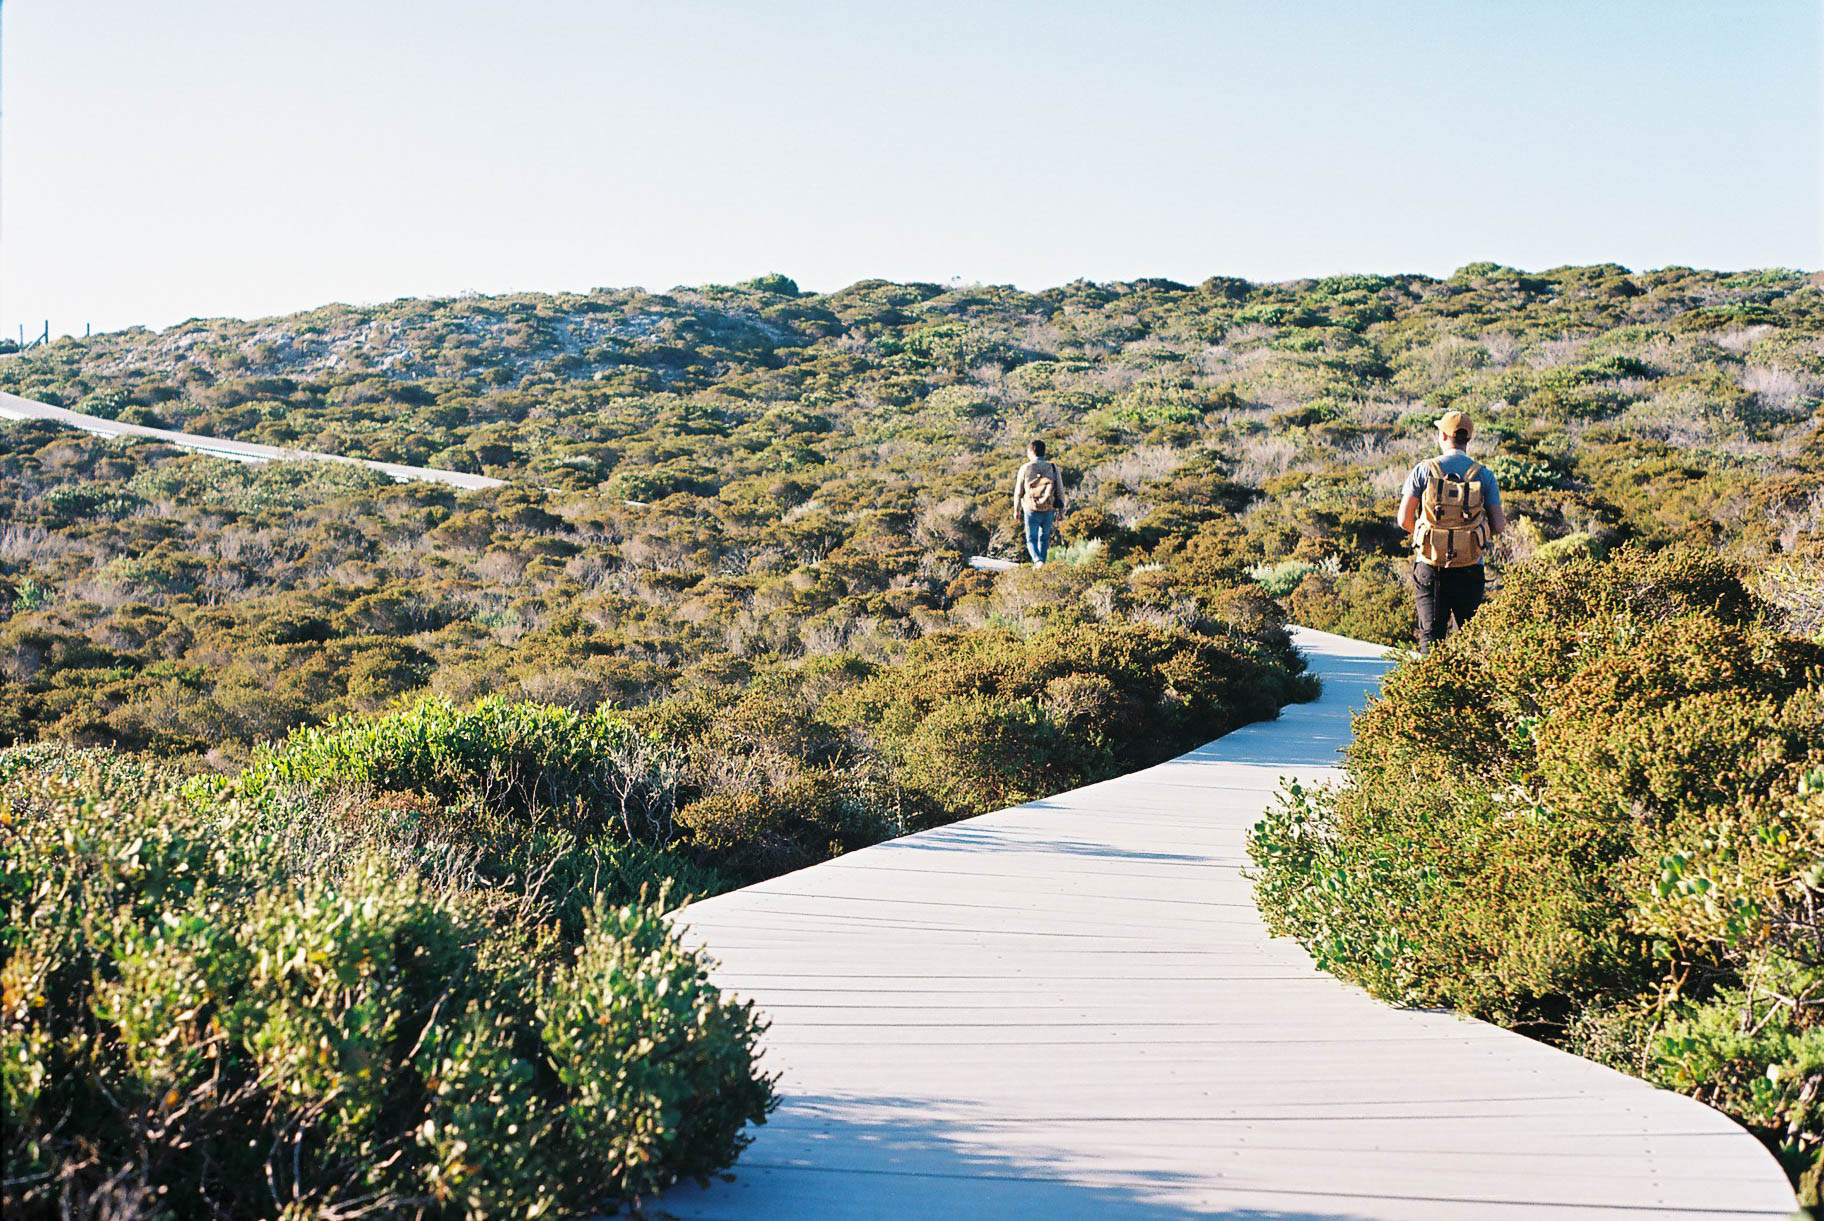 Kalbarri Coastal Walk Path Analogue Travel Photographer